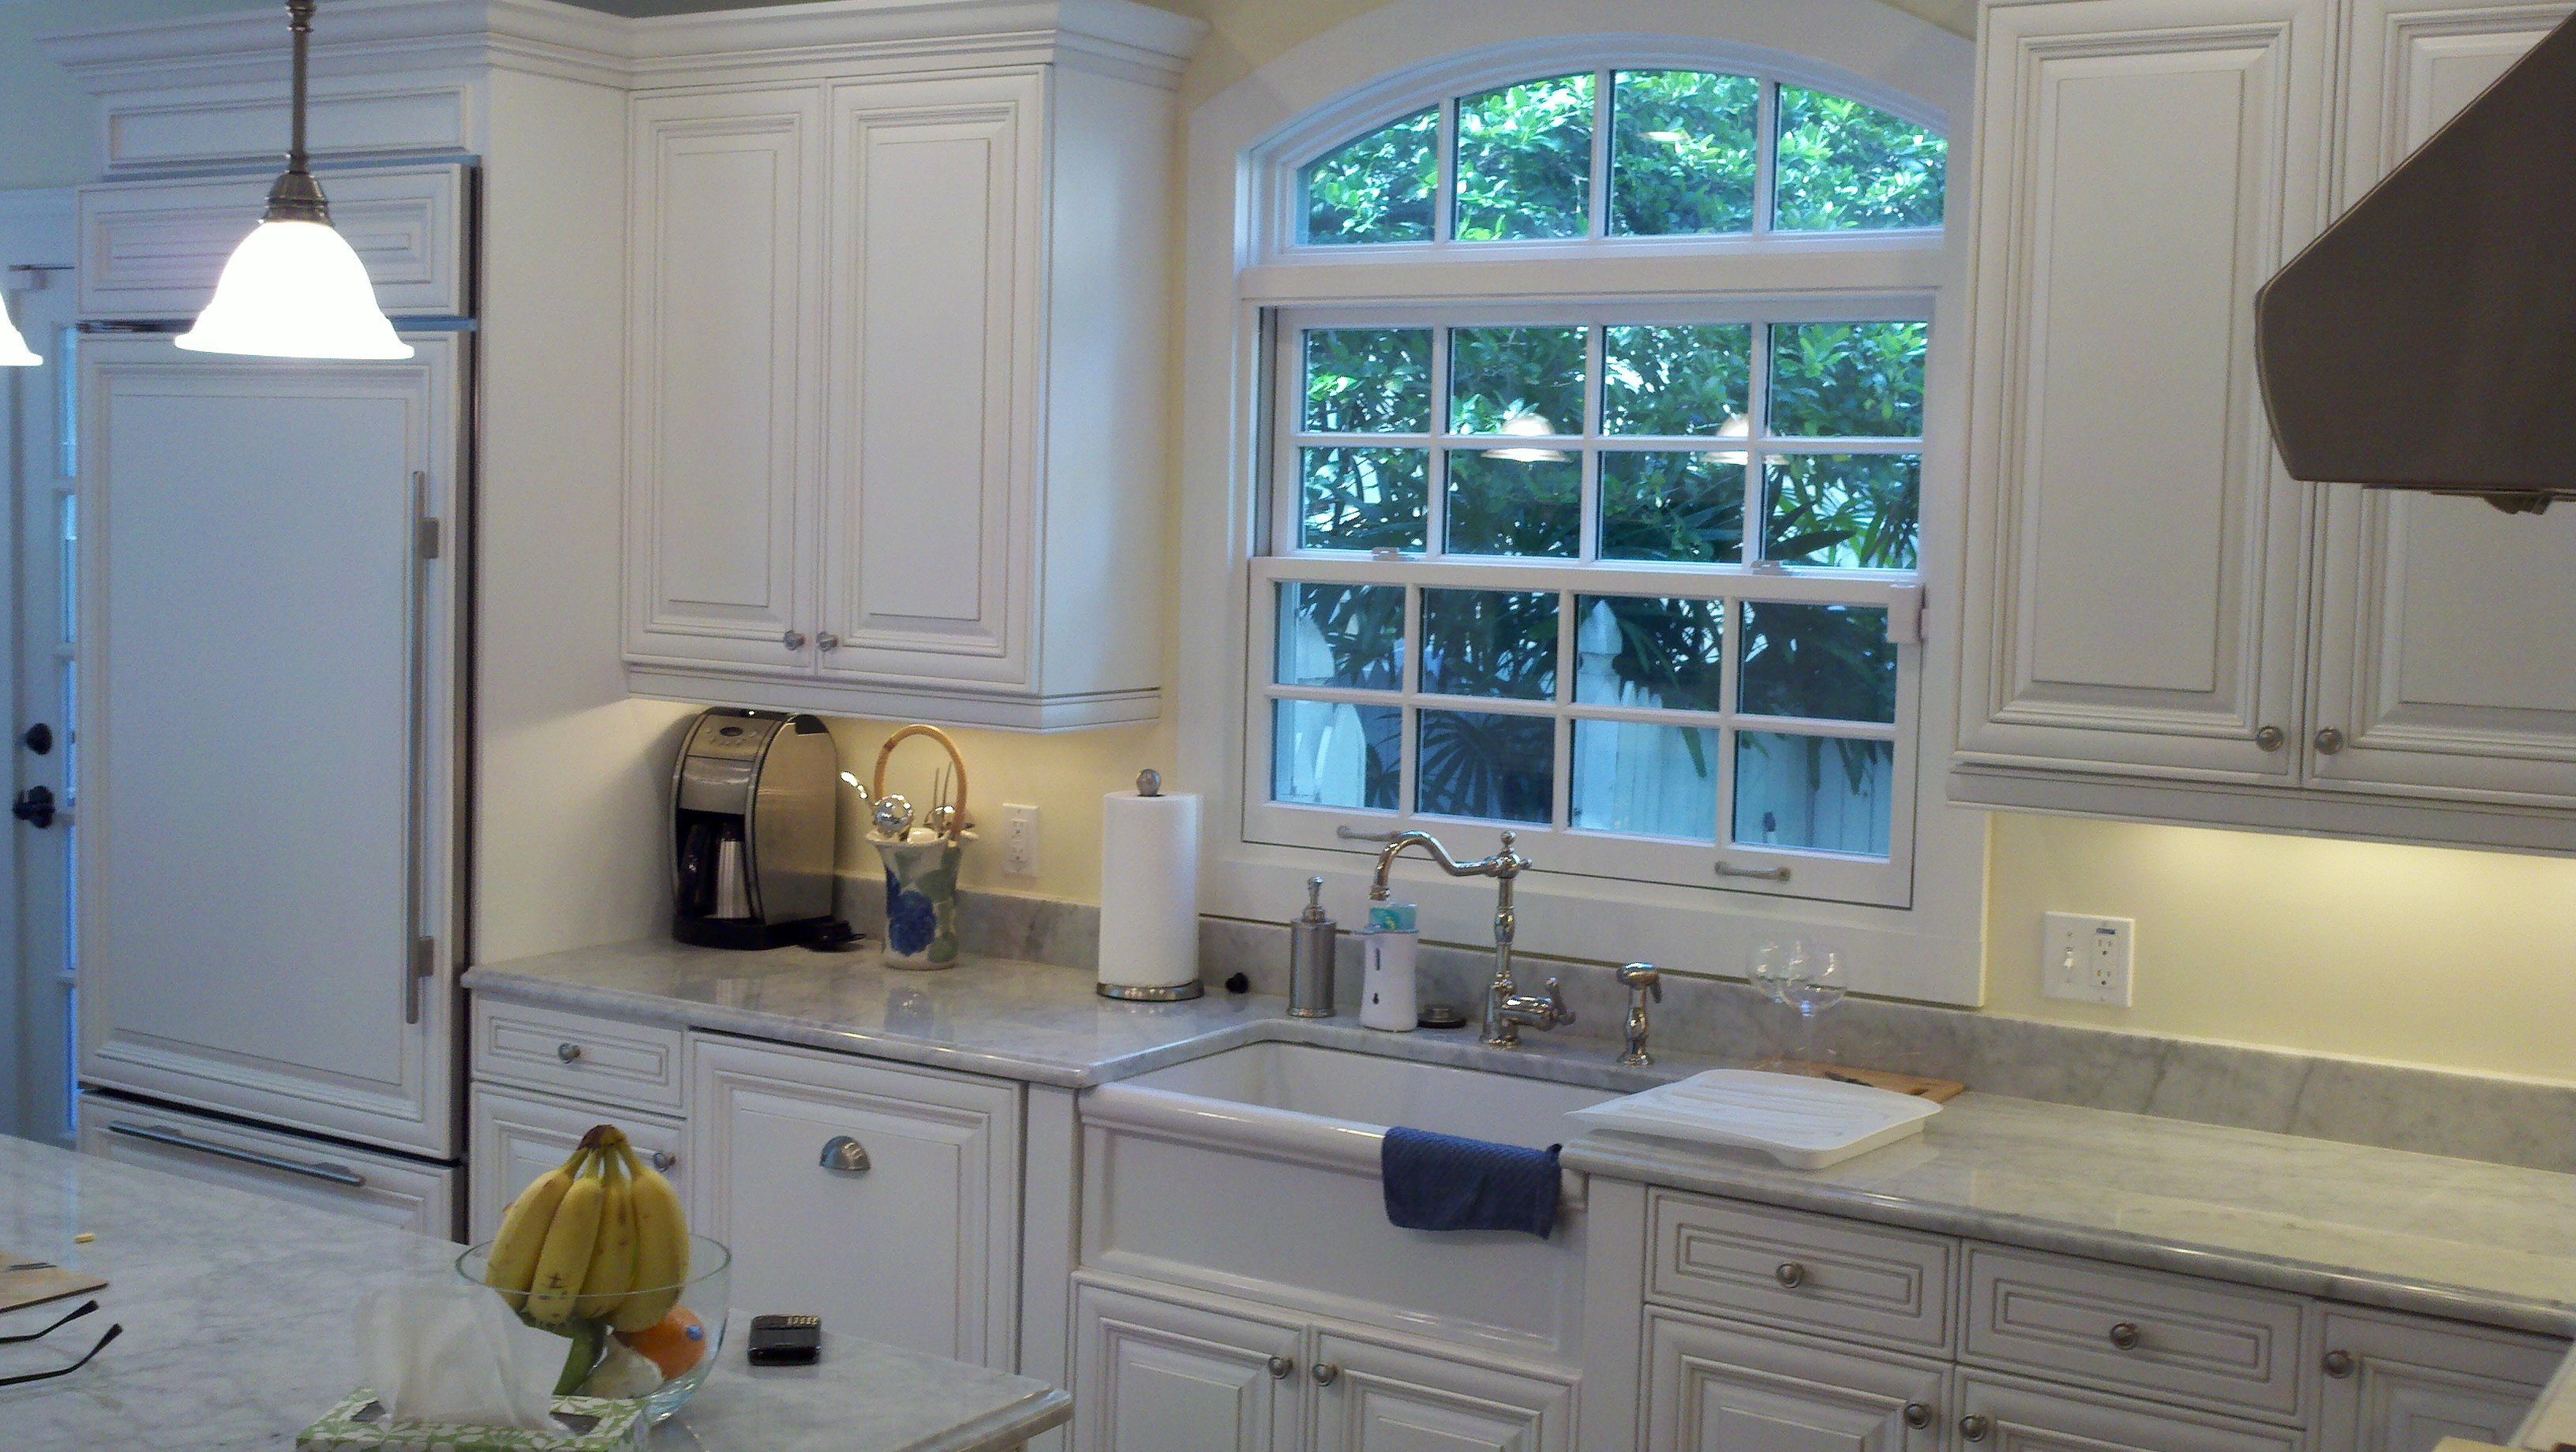 Unfinished Kitchen Cabinets Tampa Mchughs Residential Construction Remodeling Services In